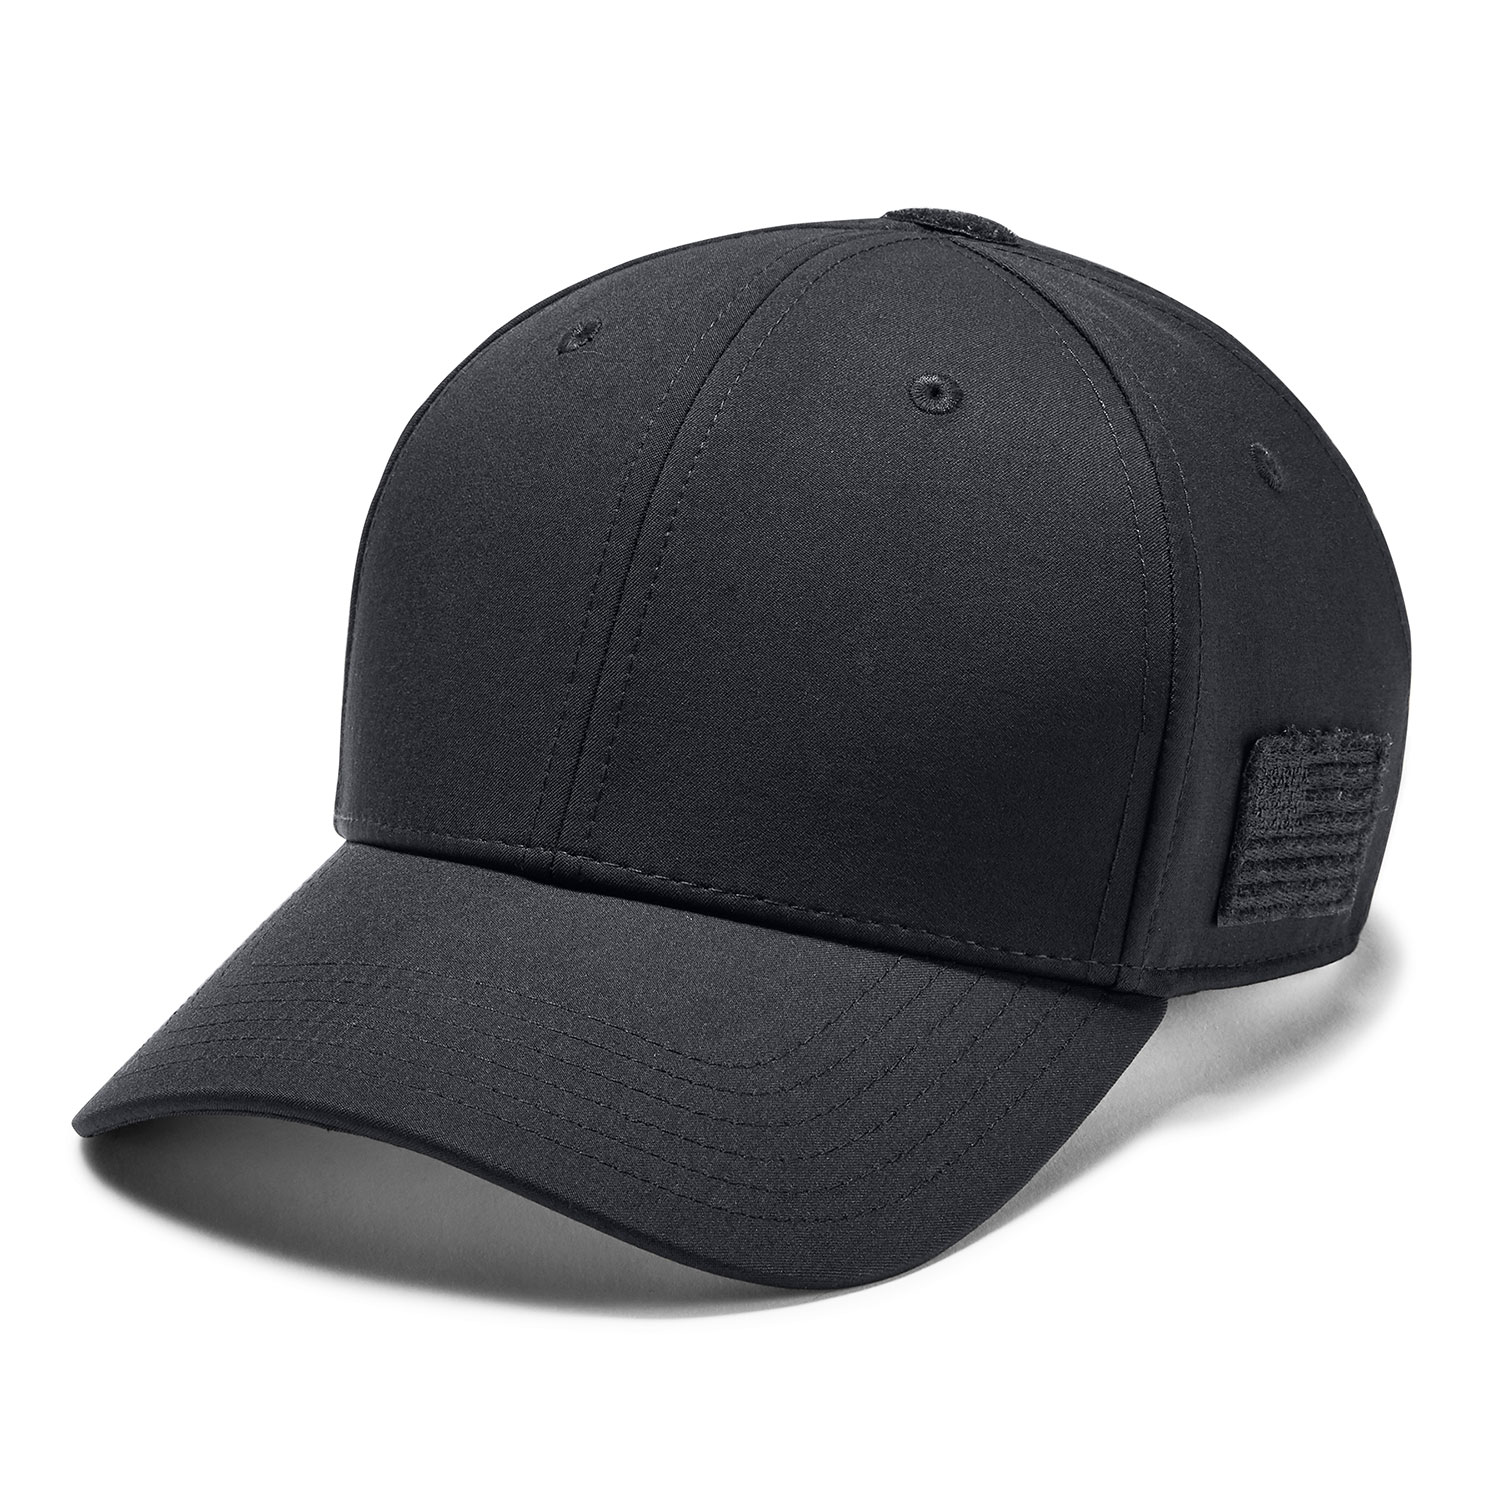 0363e842404 Under Armour Tactical Friend or Foe 2.0 Cap